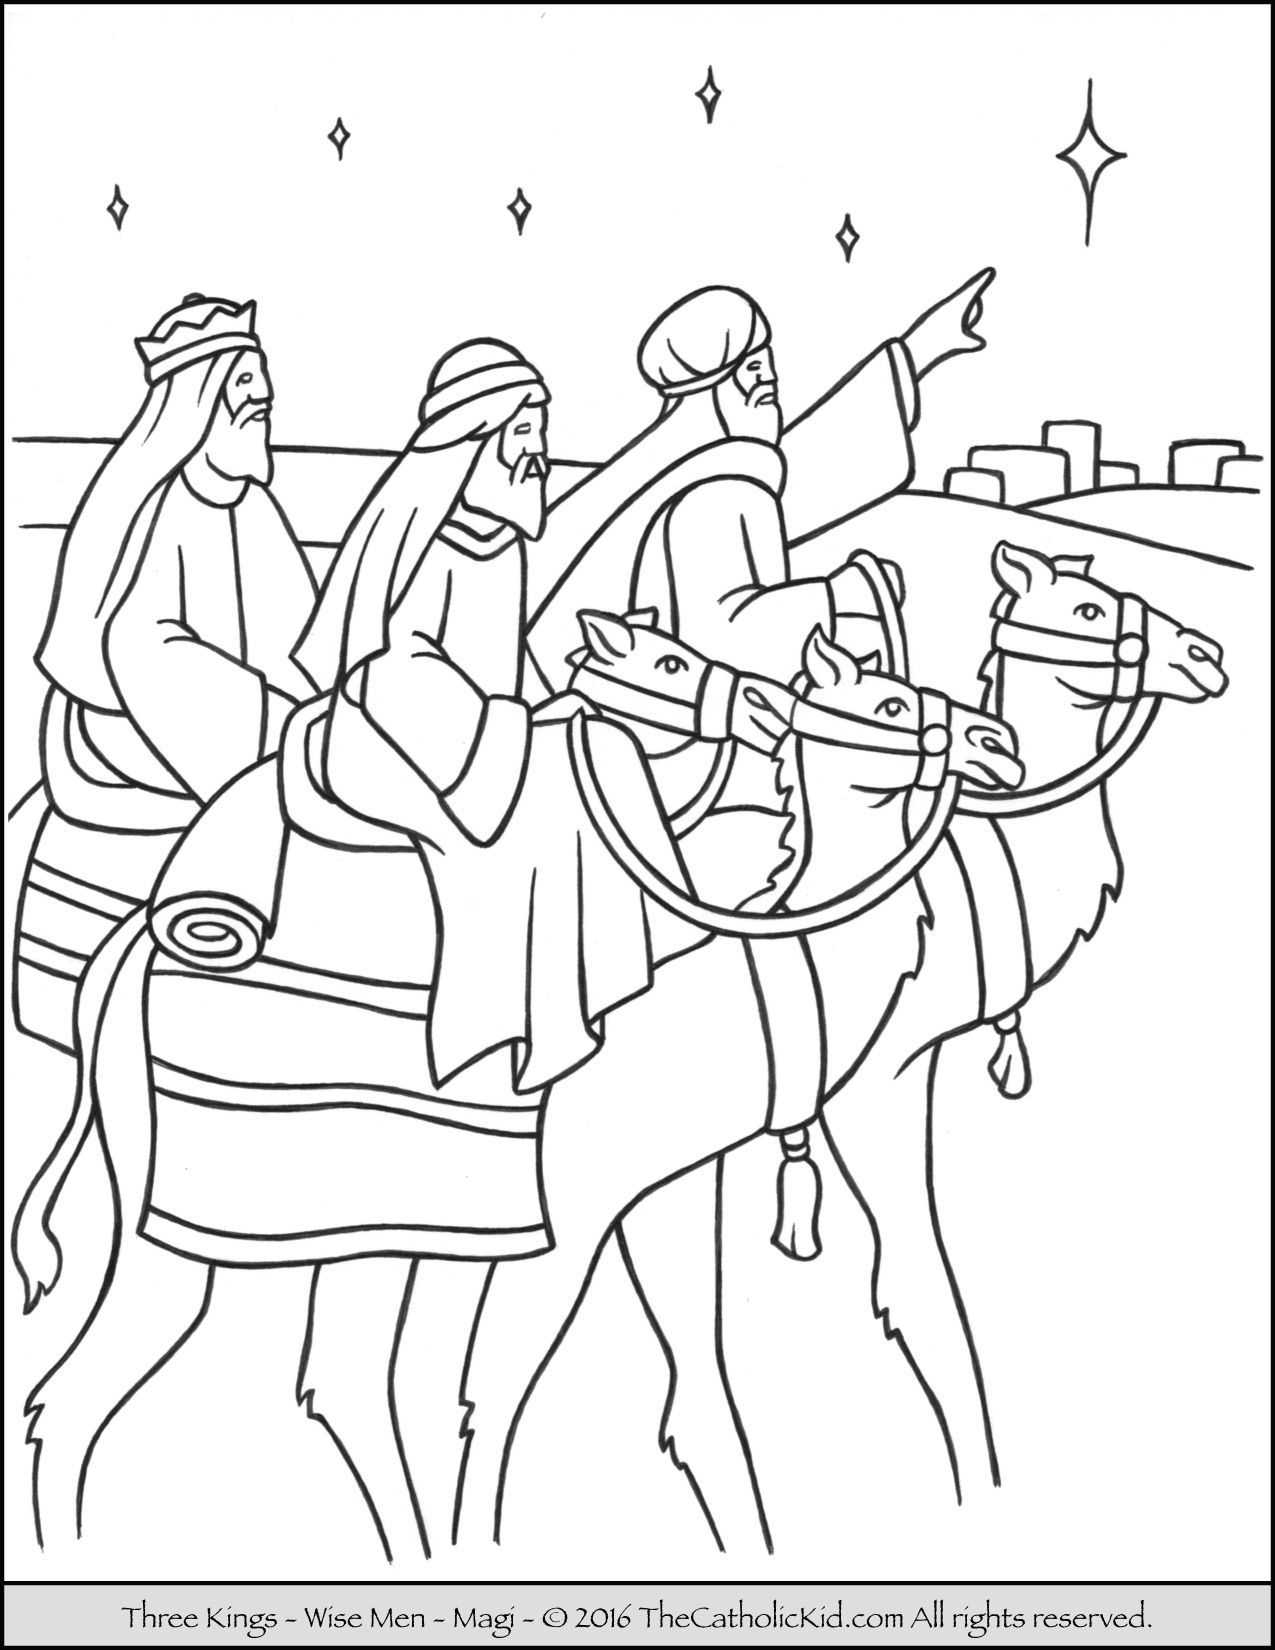 Catholic Coloring Pages For